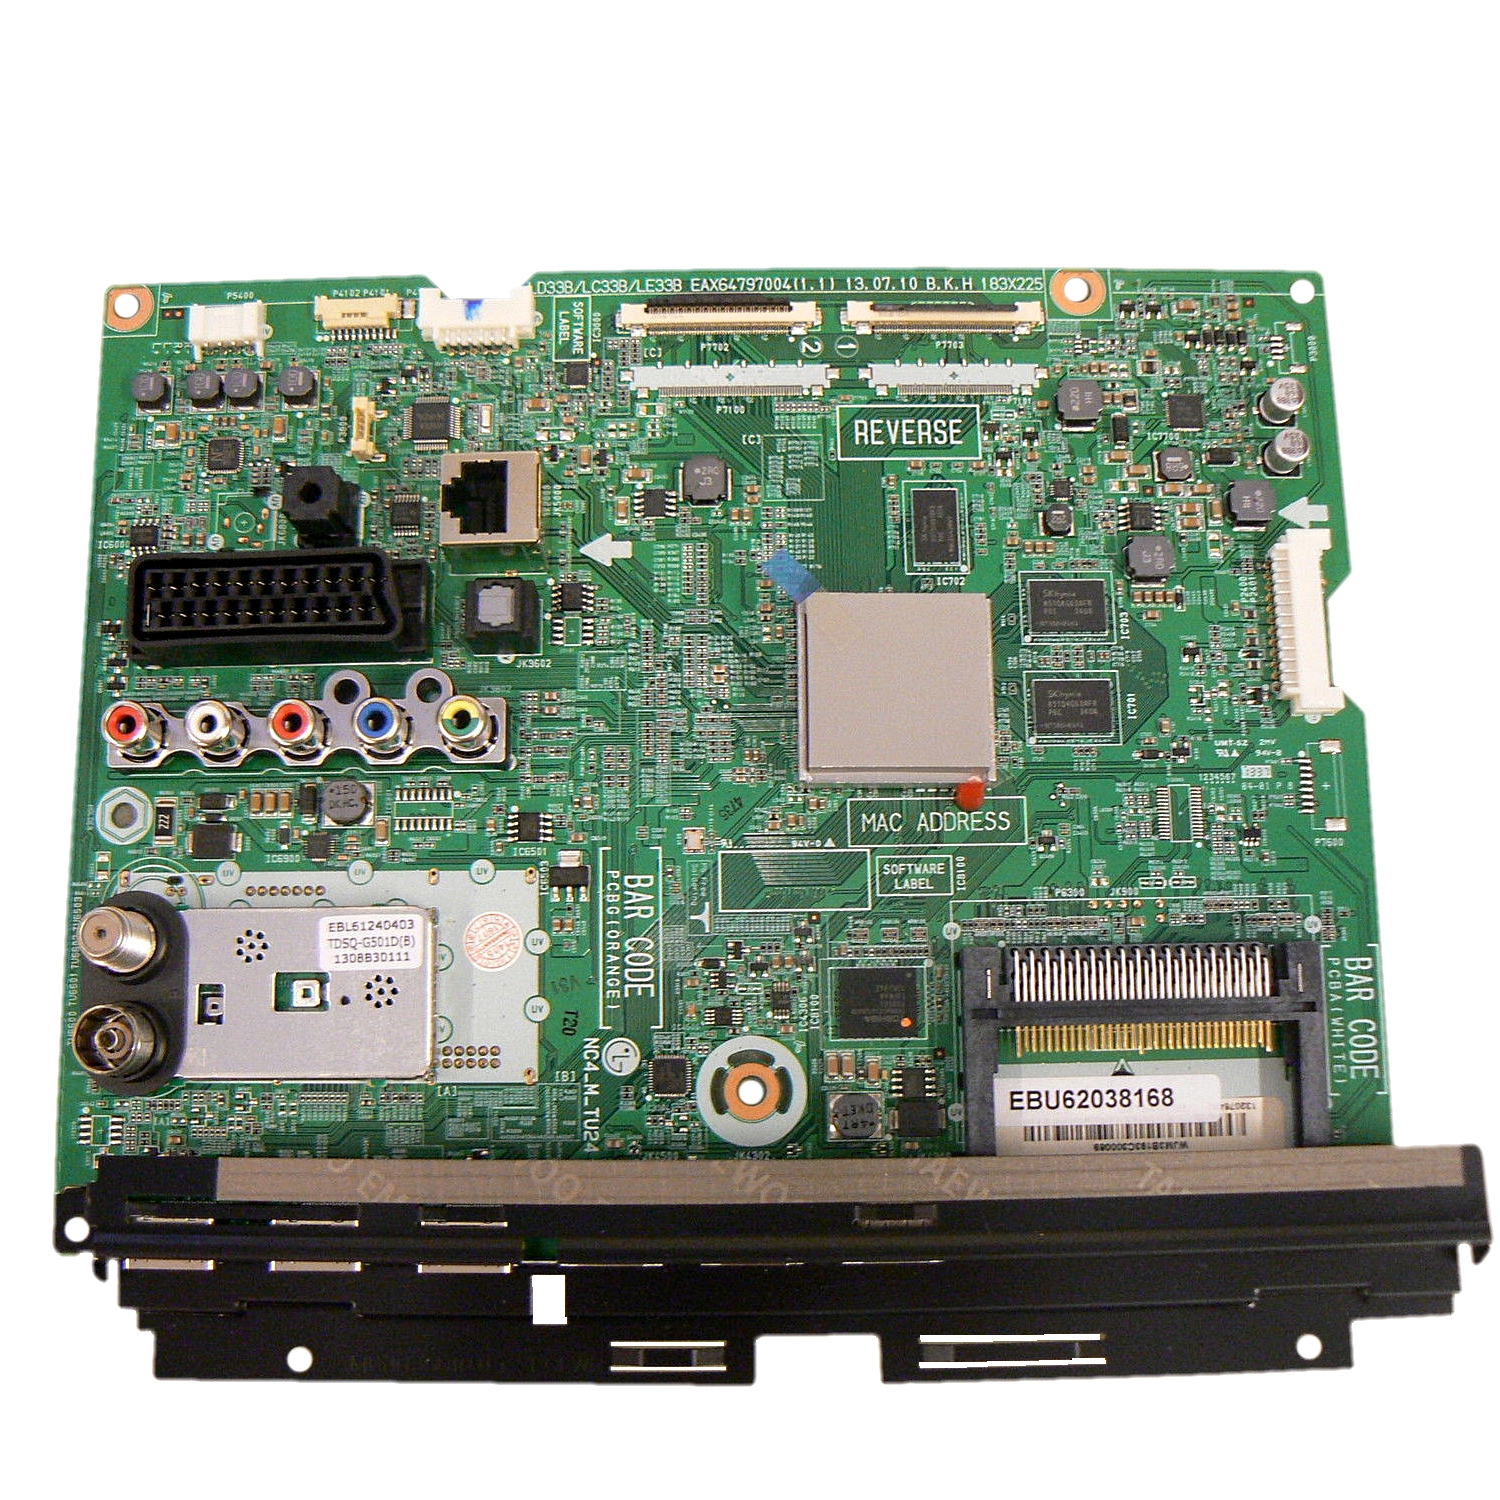 EBU62038168 Main Total  Assembly MAIN BOARD 42LA660S  42LA667S M120 BRAND LD33B MTK5398 LG